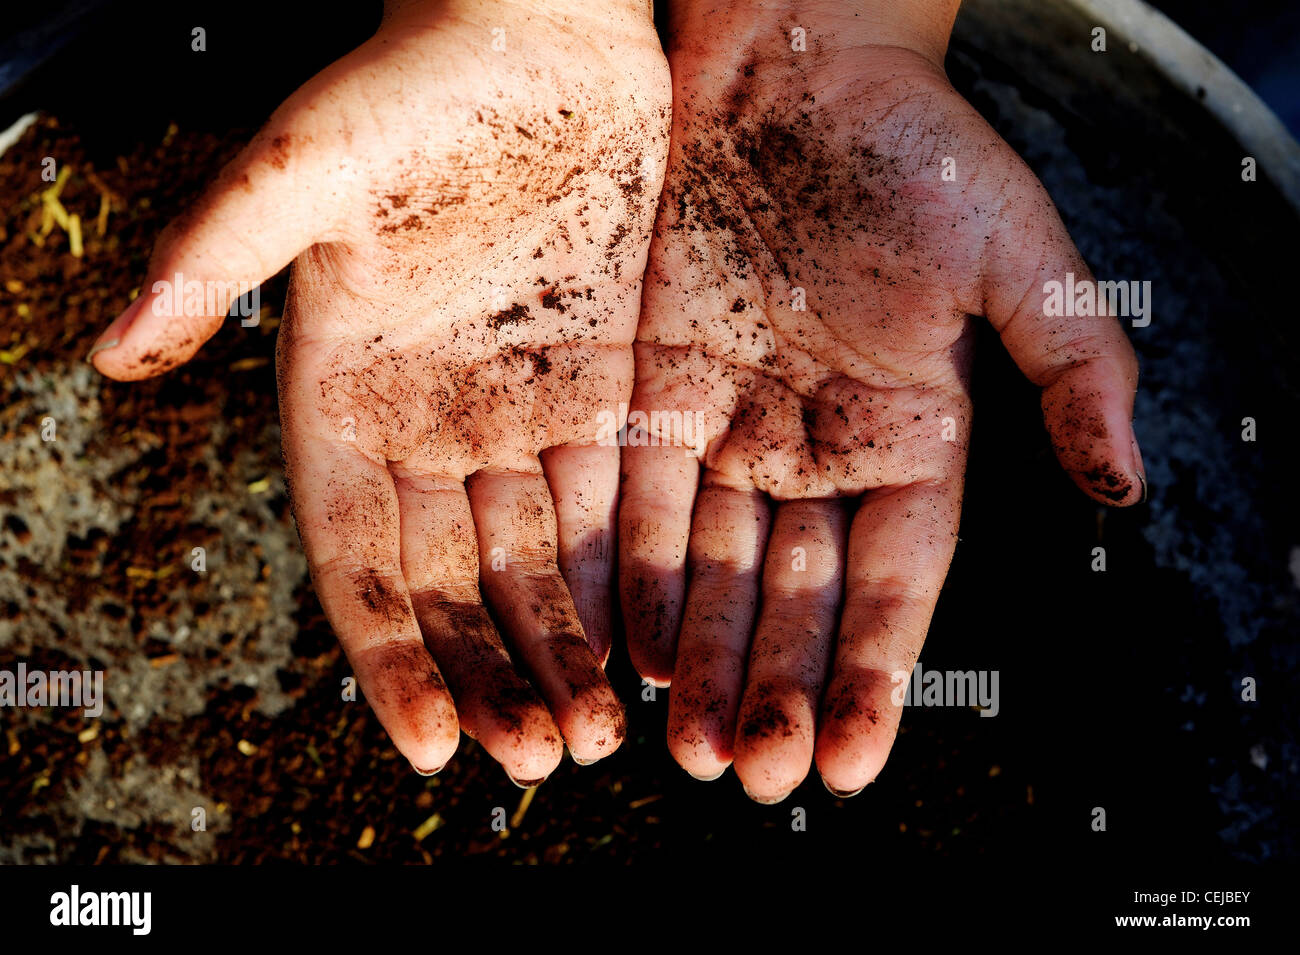 Hand covered in soil - Stock Image